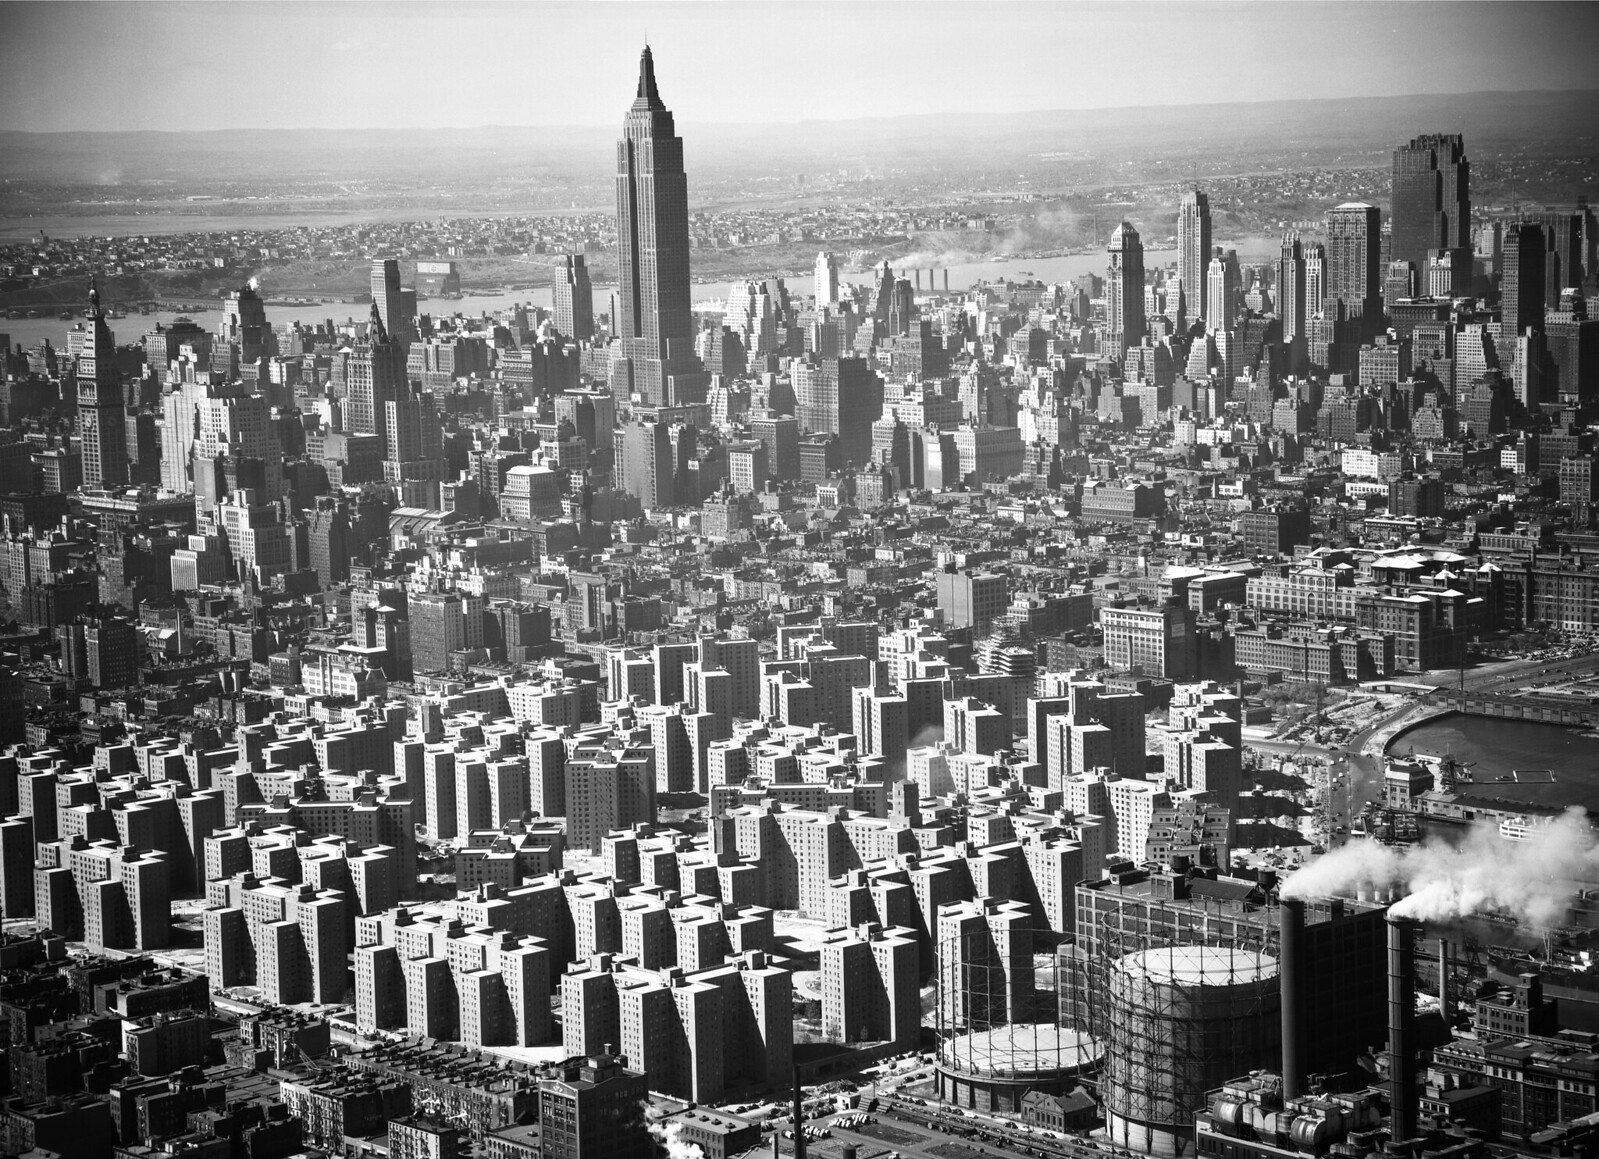 Old Pics New York City! - Page 134 - SkyscraperCity